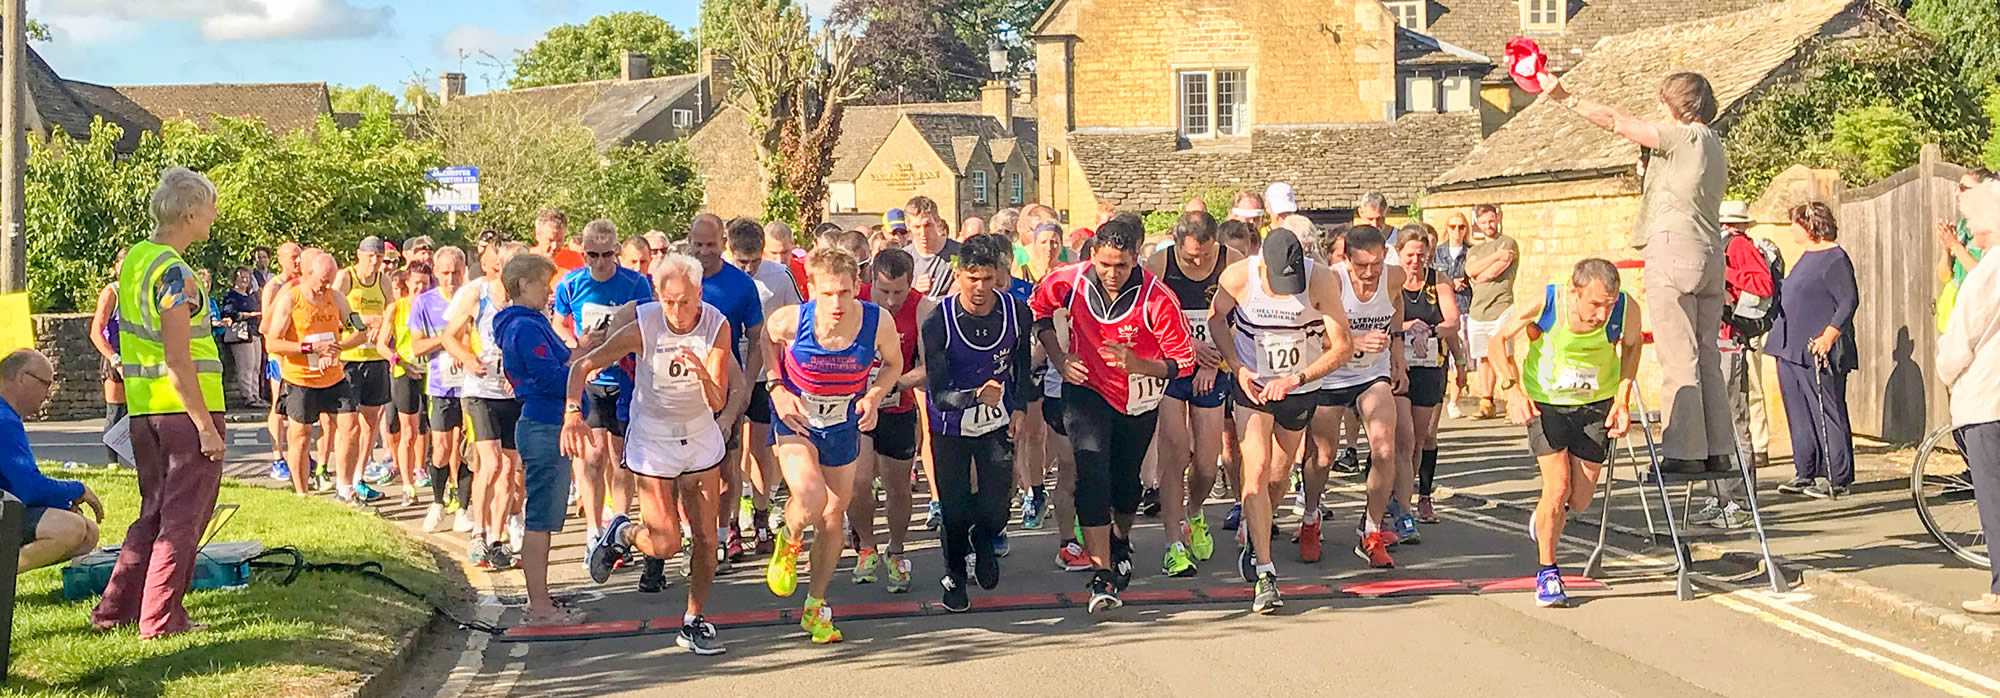 Start of the 2018 Humph's Hilly Half